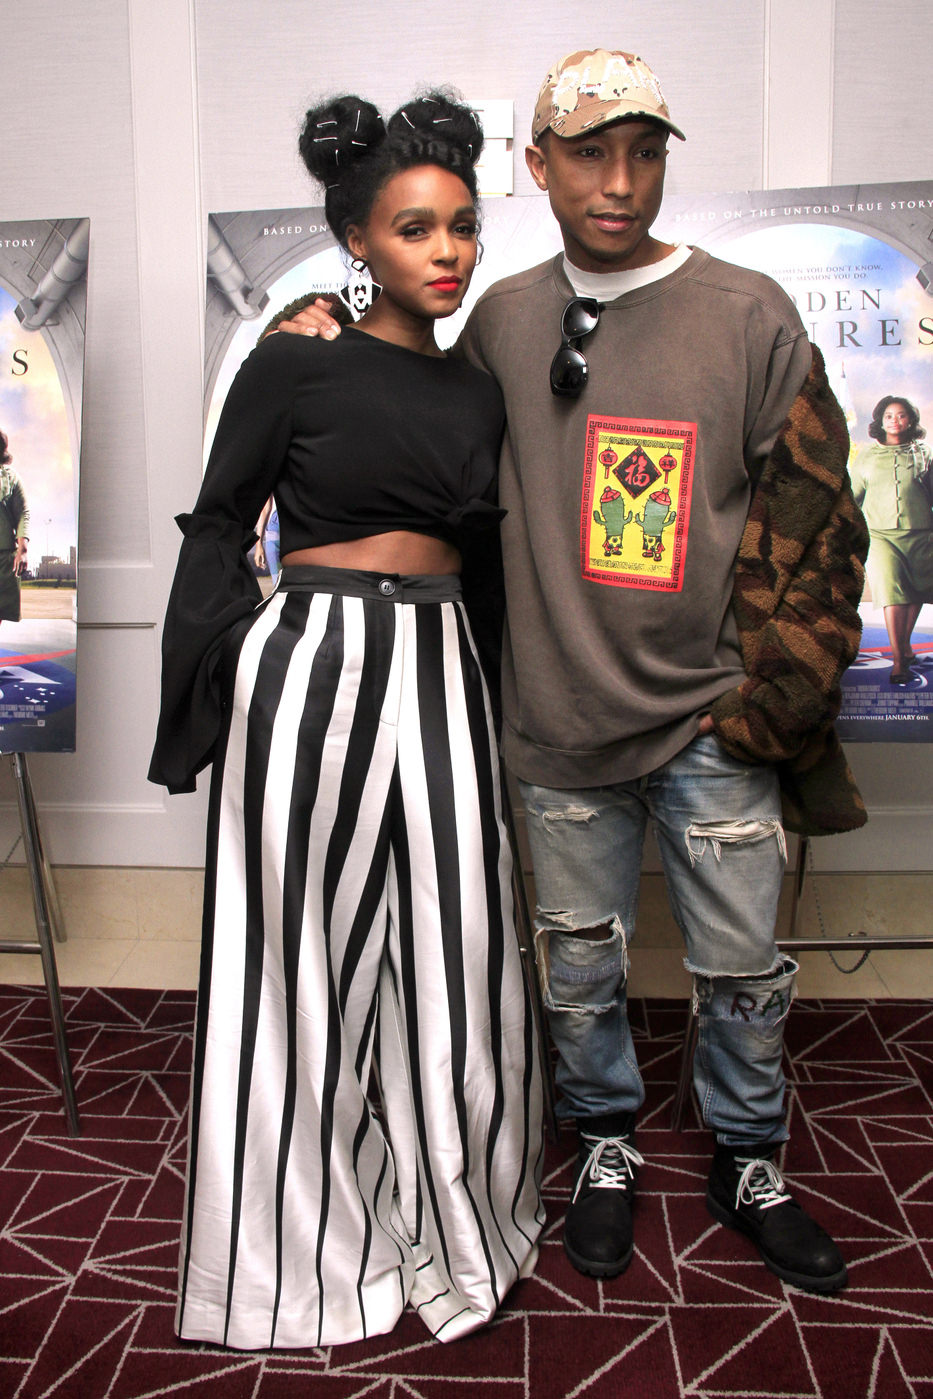 janelle-monae-pharrell-williams-hidden-figures-los-angeles-screening-red-carpet-fashion-tom-lorenzo-site-1